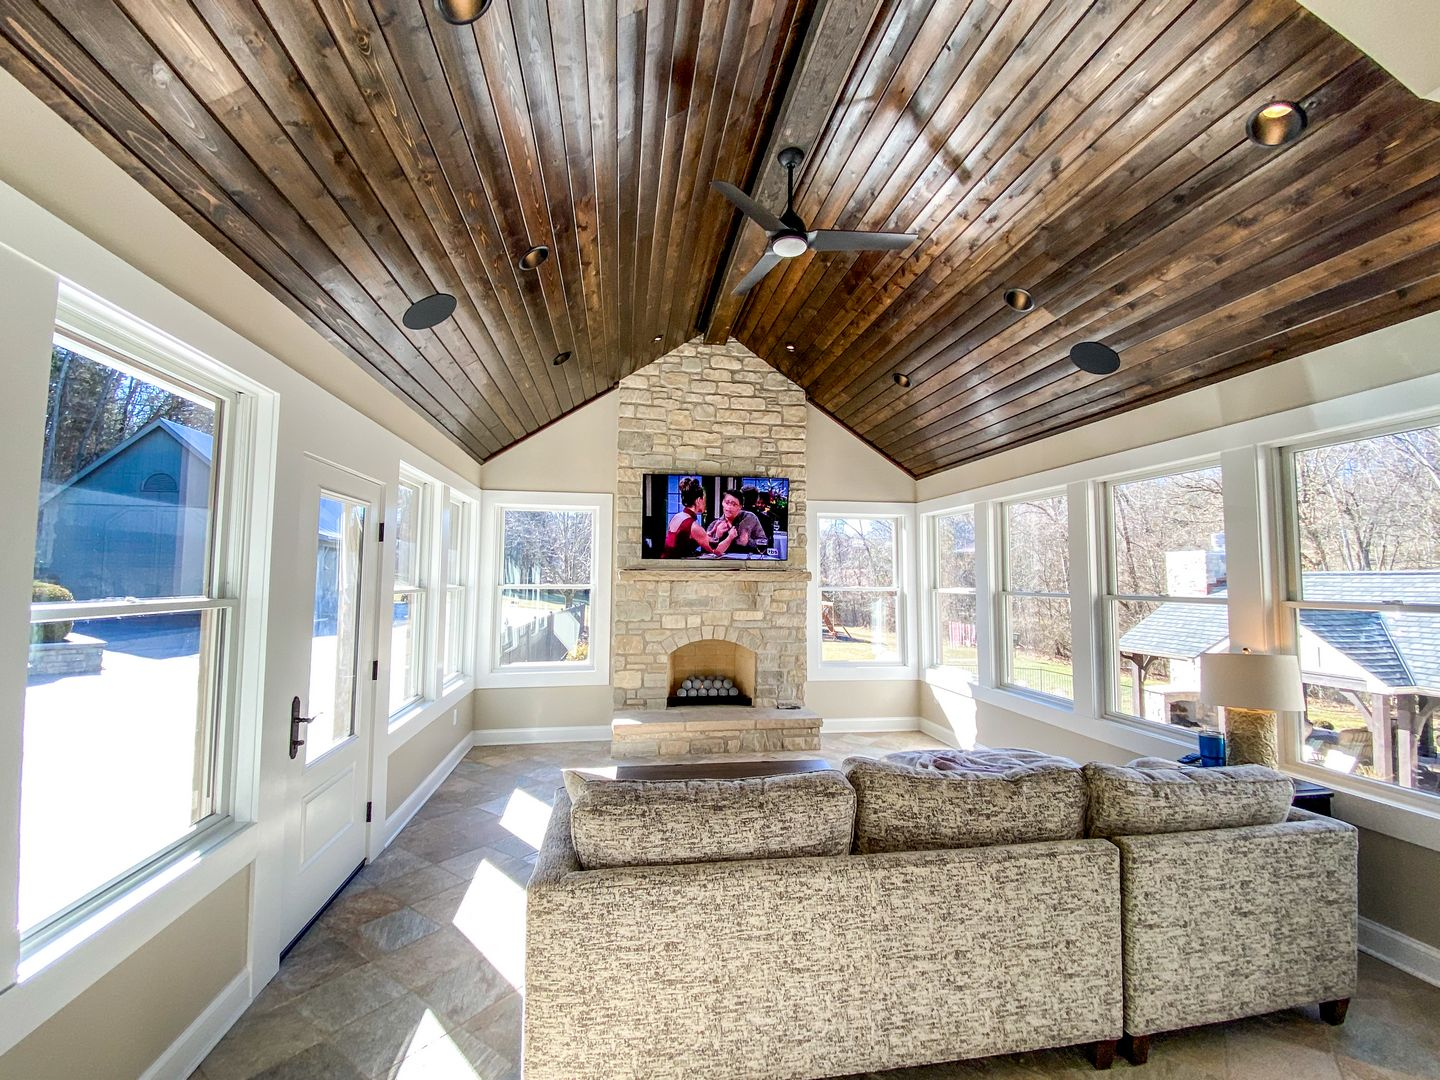 Custom stained ceiling to match shutters